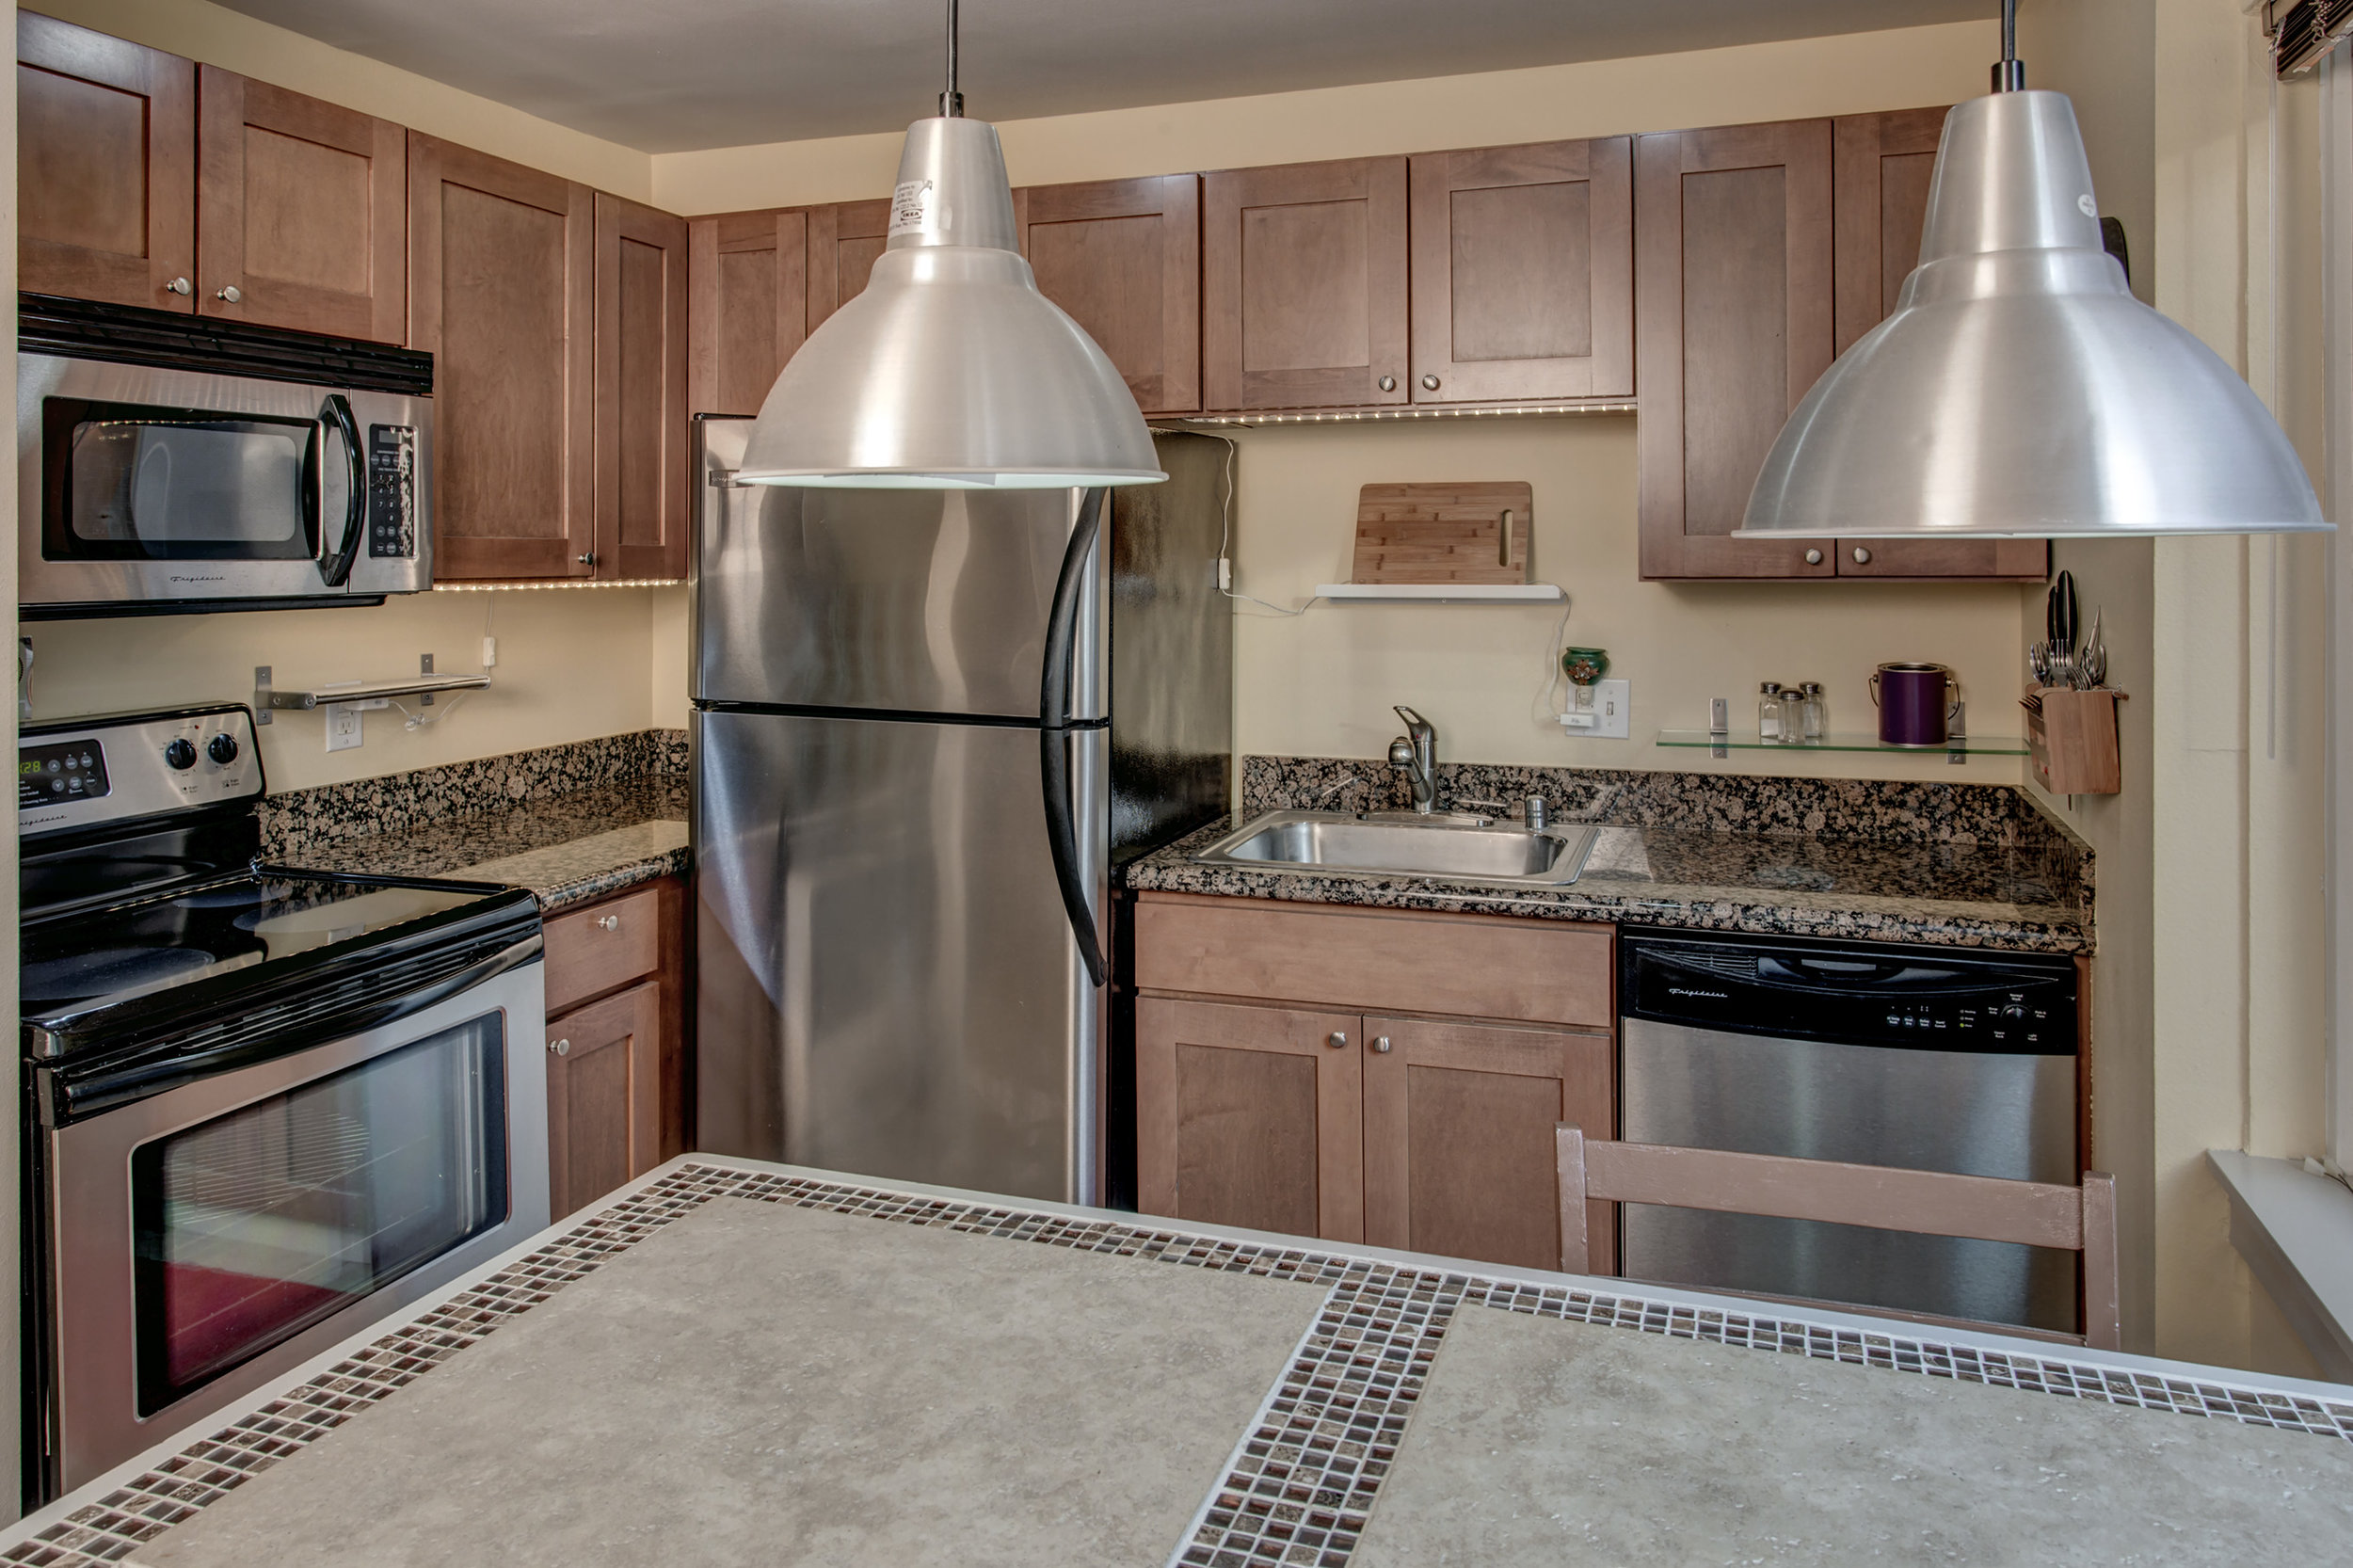 Mmmmm, Stainless Steel Appliances